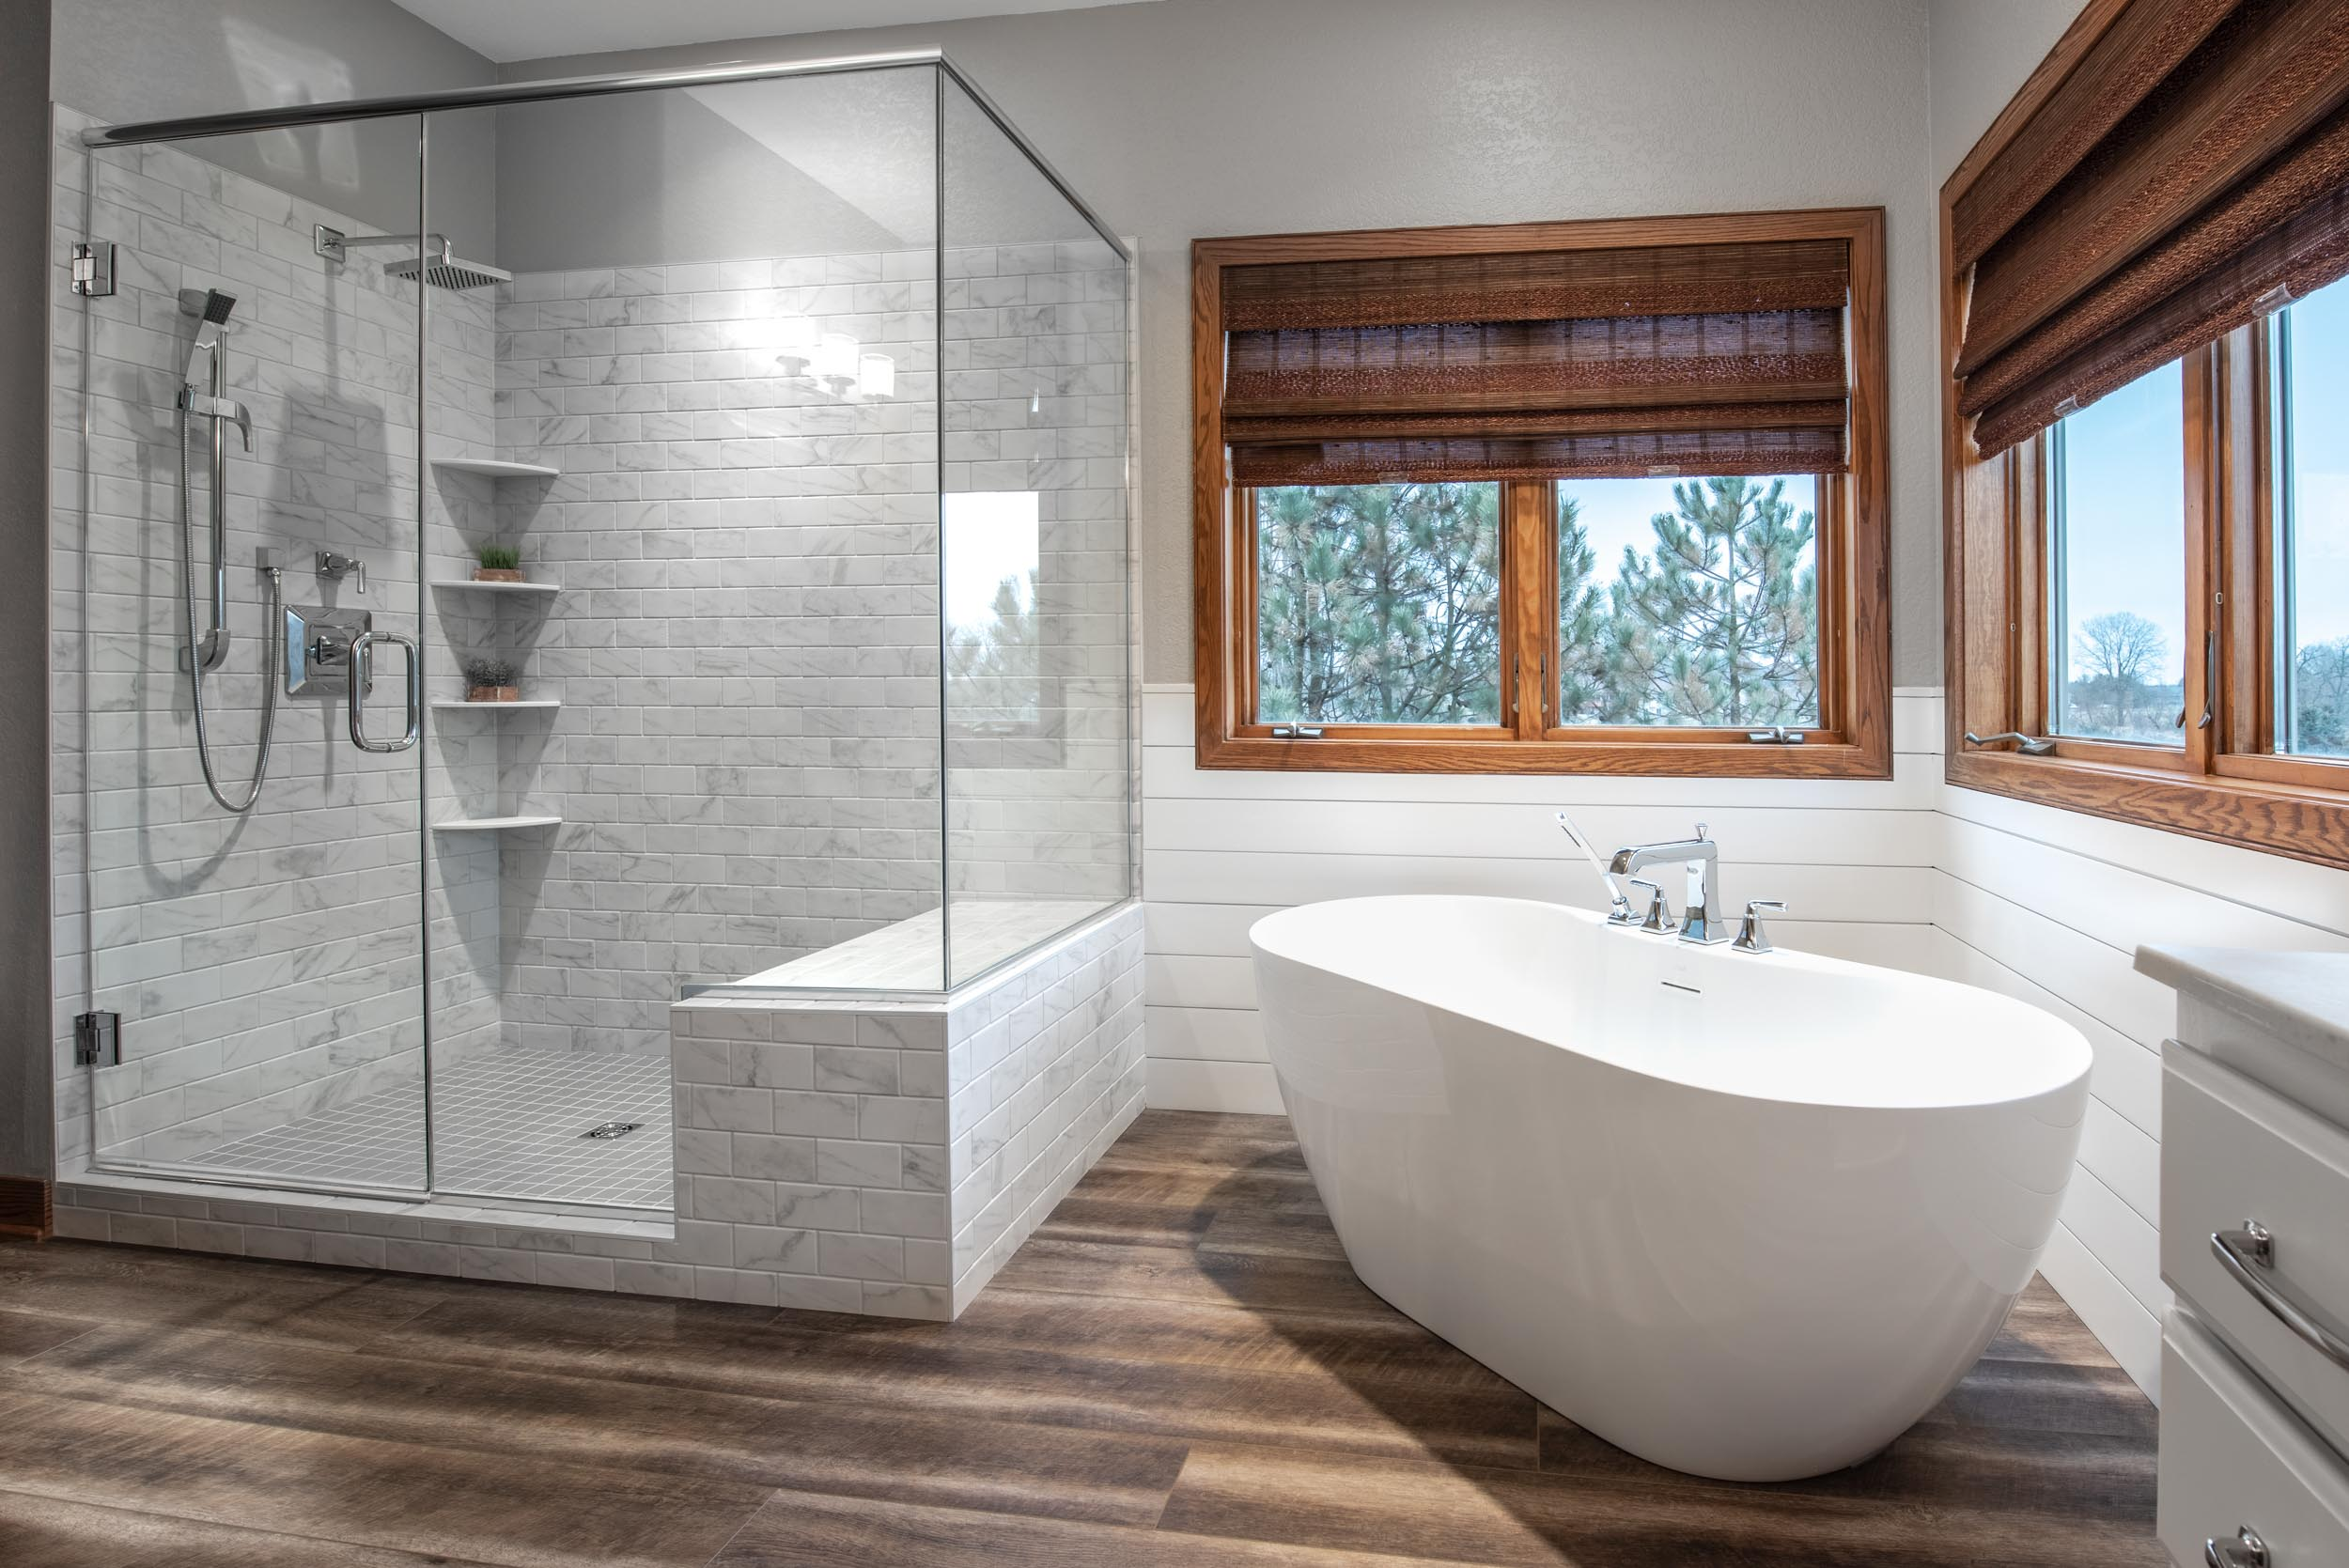 The Price Of A Bathroom Remodeling Projects in Greater ...